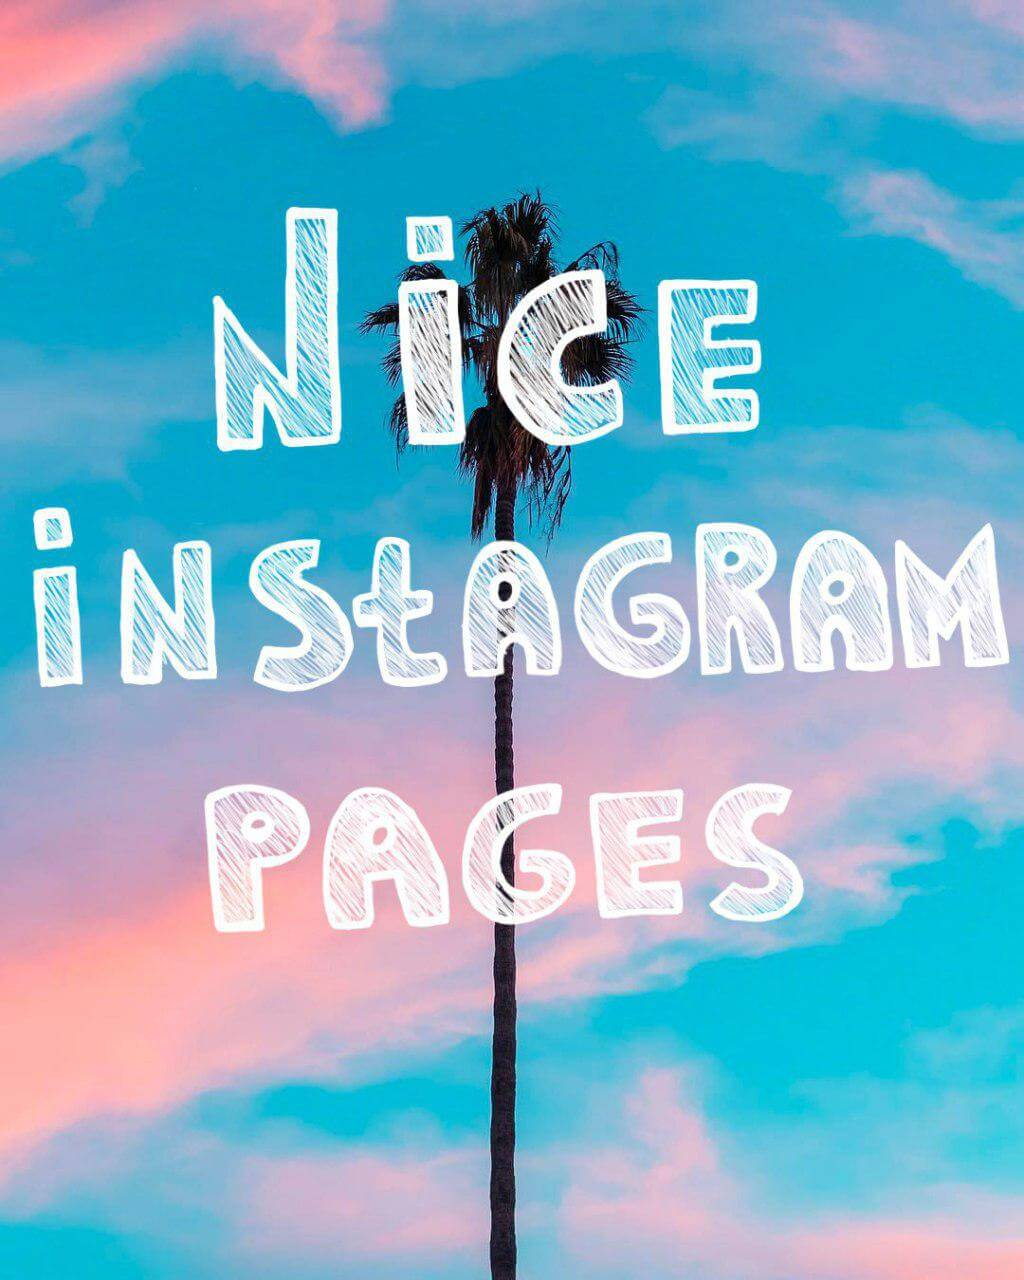 NiceInstPages